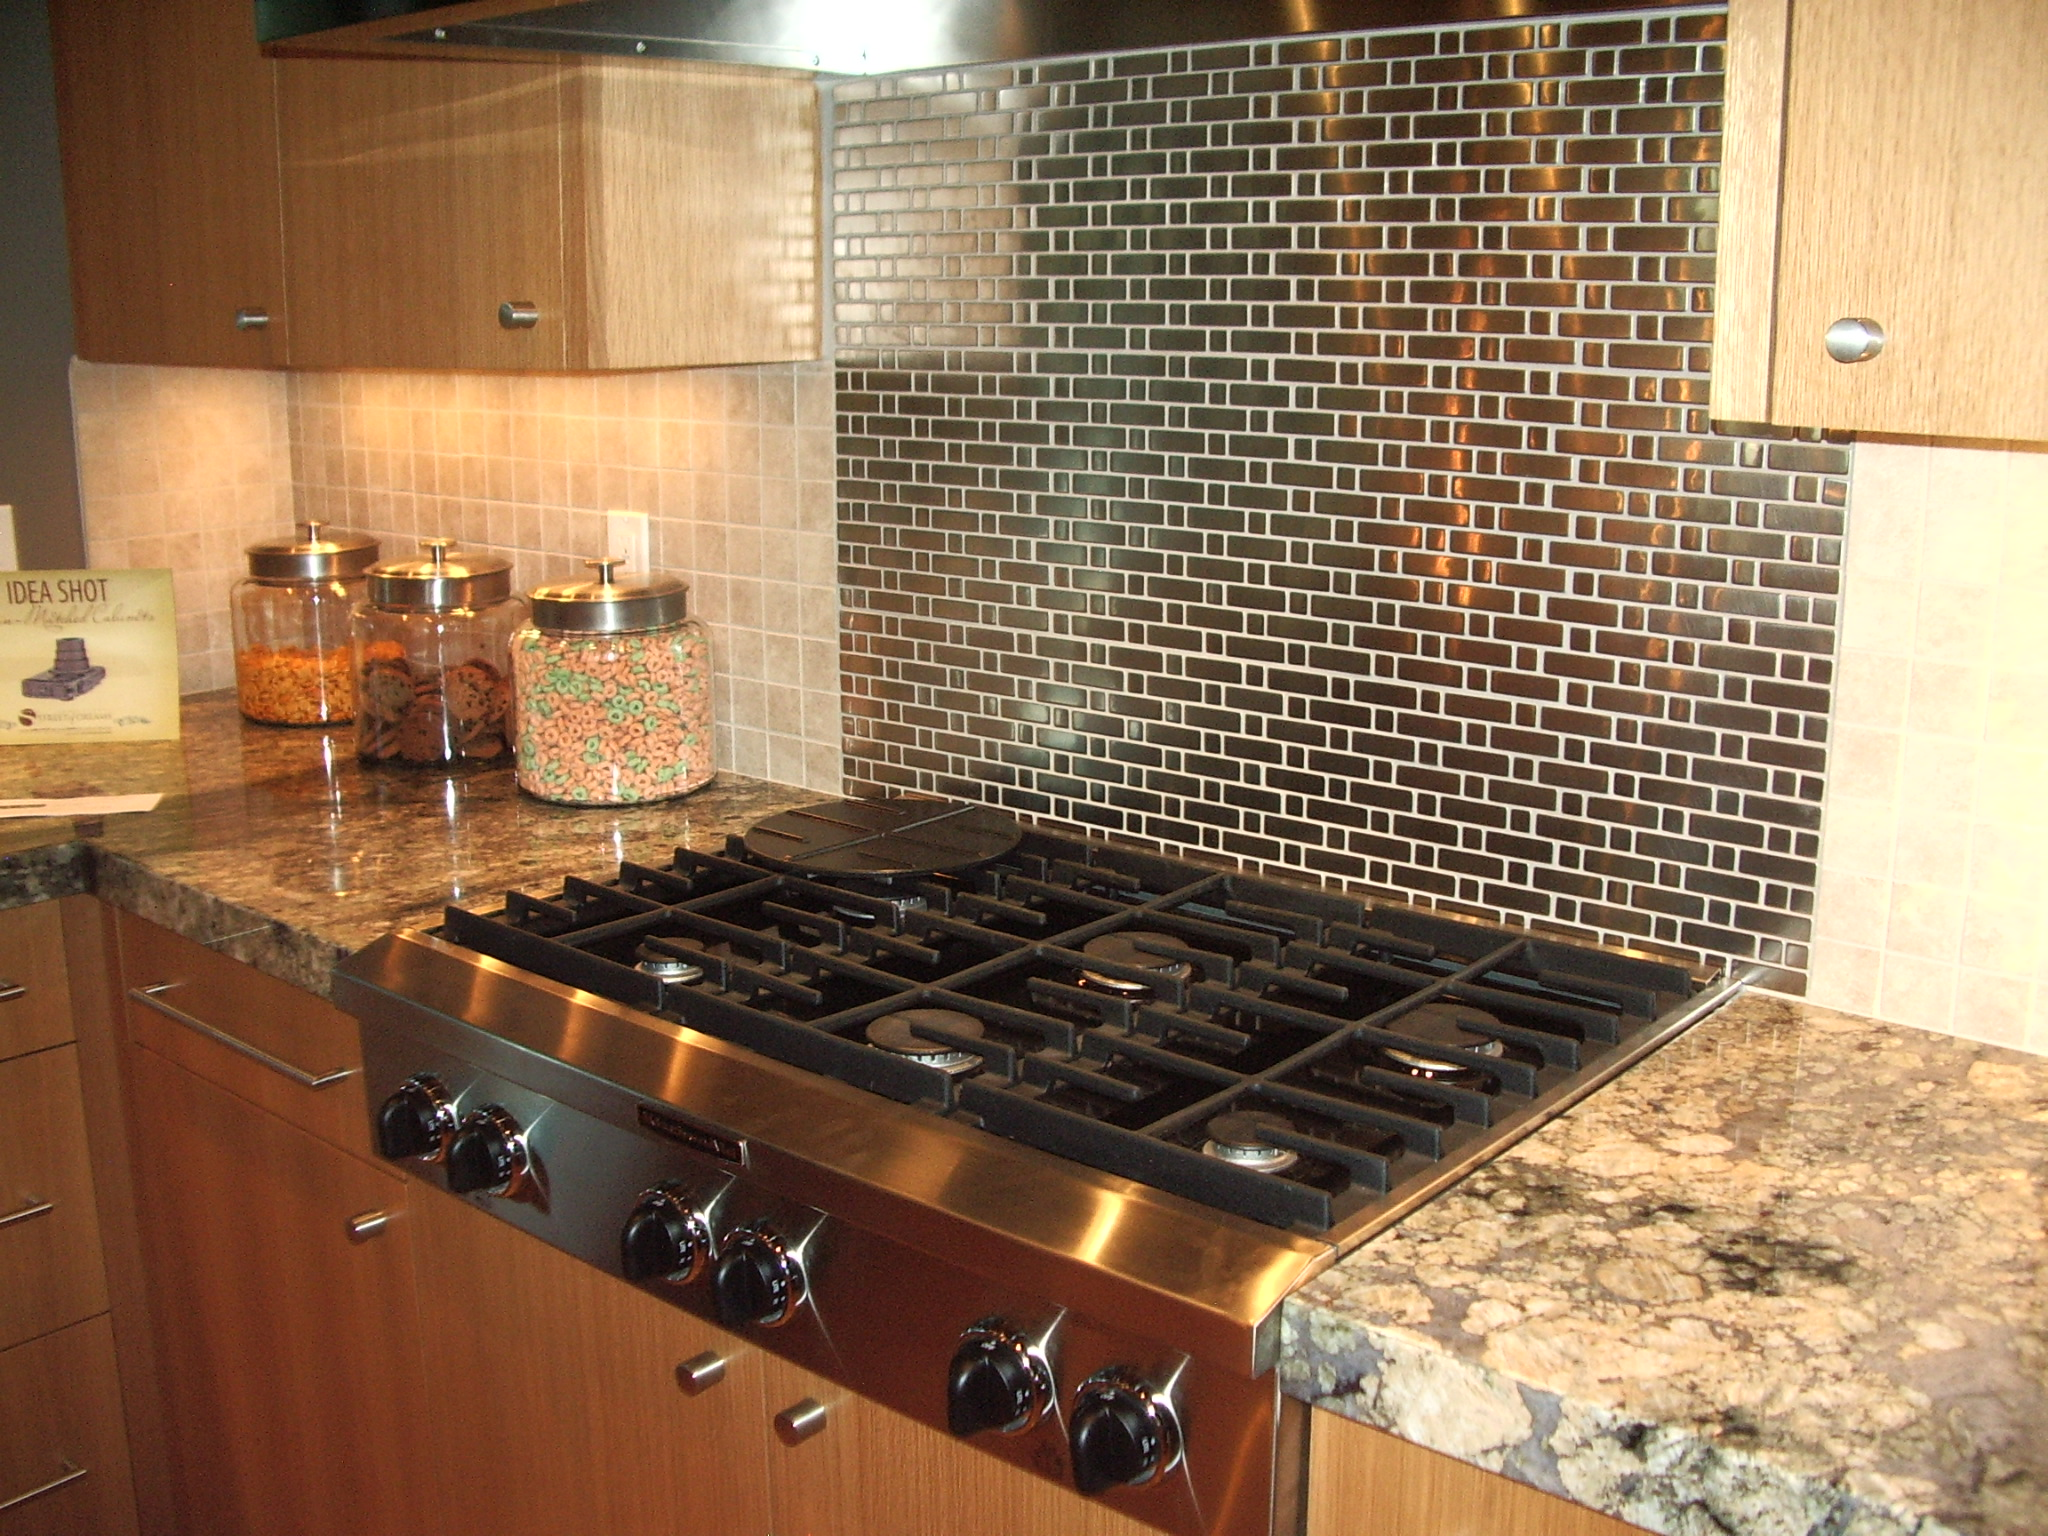 Important kitchen interior design components part 3 to backsplash or not to backsplash - Backsplash design ...